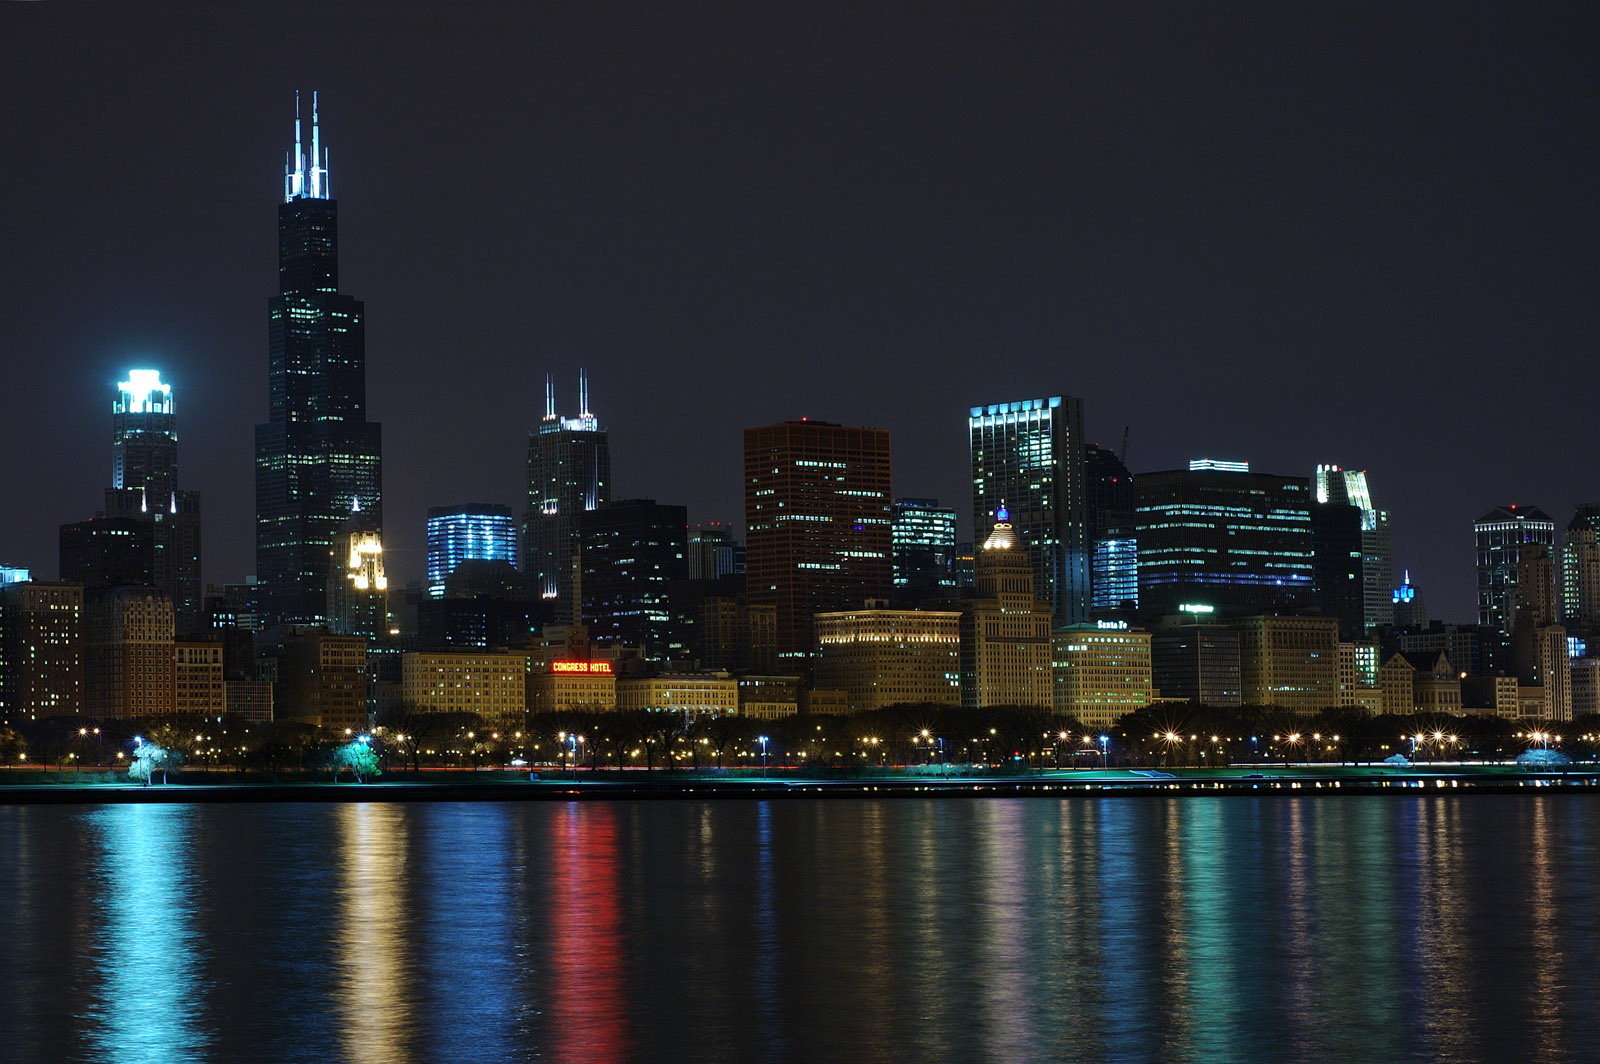 Free Download Cool Backgrounds And Wallpapers For Your Desktop Or Laptop 1600x1064 For Your Desktop Mobile Tablet Explore 50 Chicago Wallpaper For My Desktop Chicago Sports Wallpaper Chicago Teams